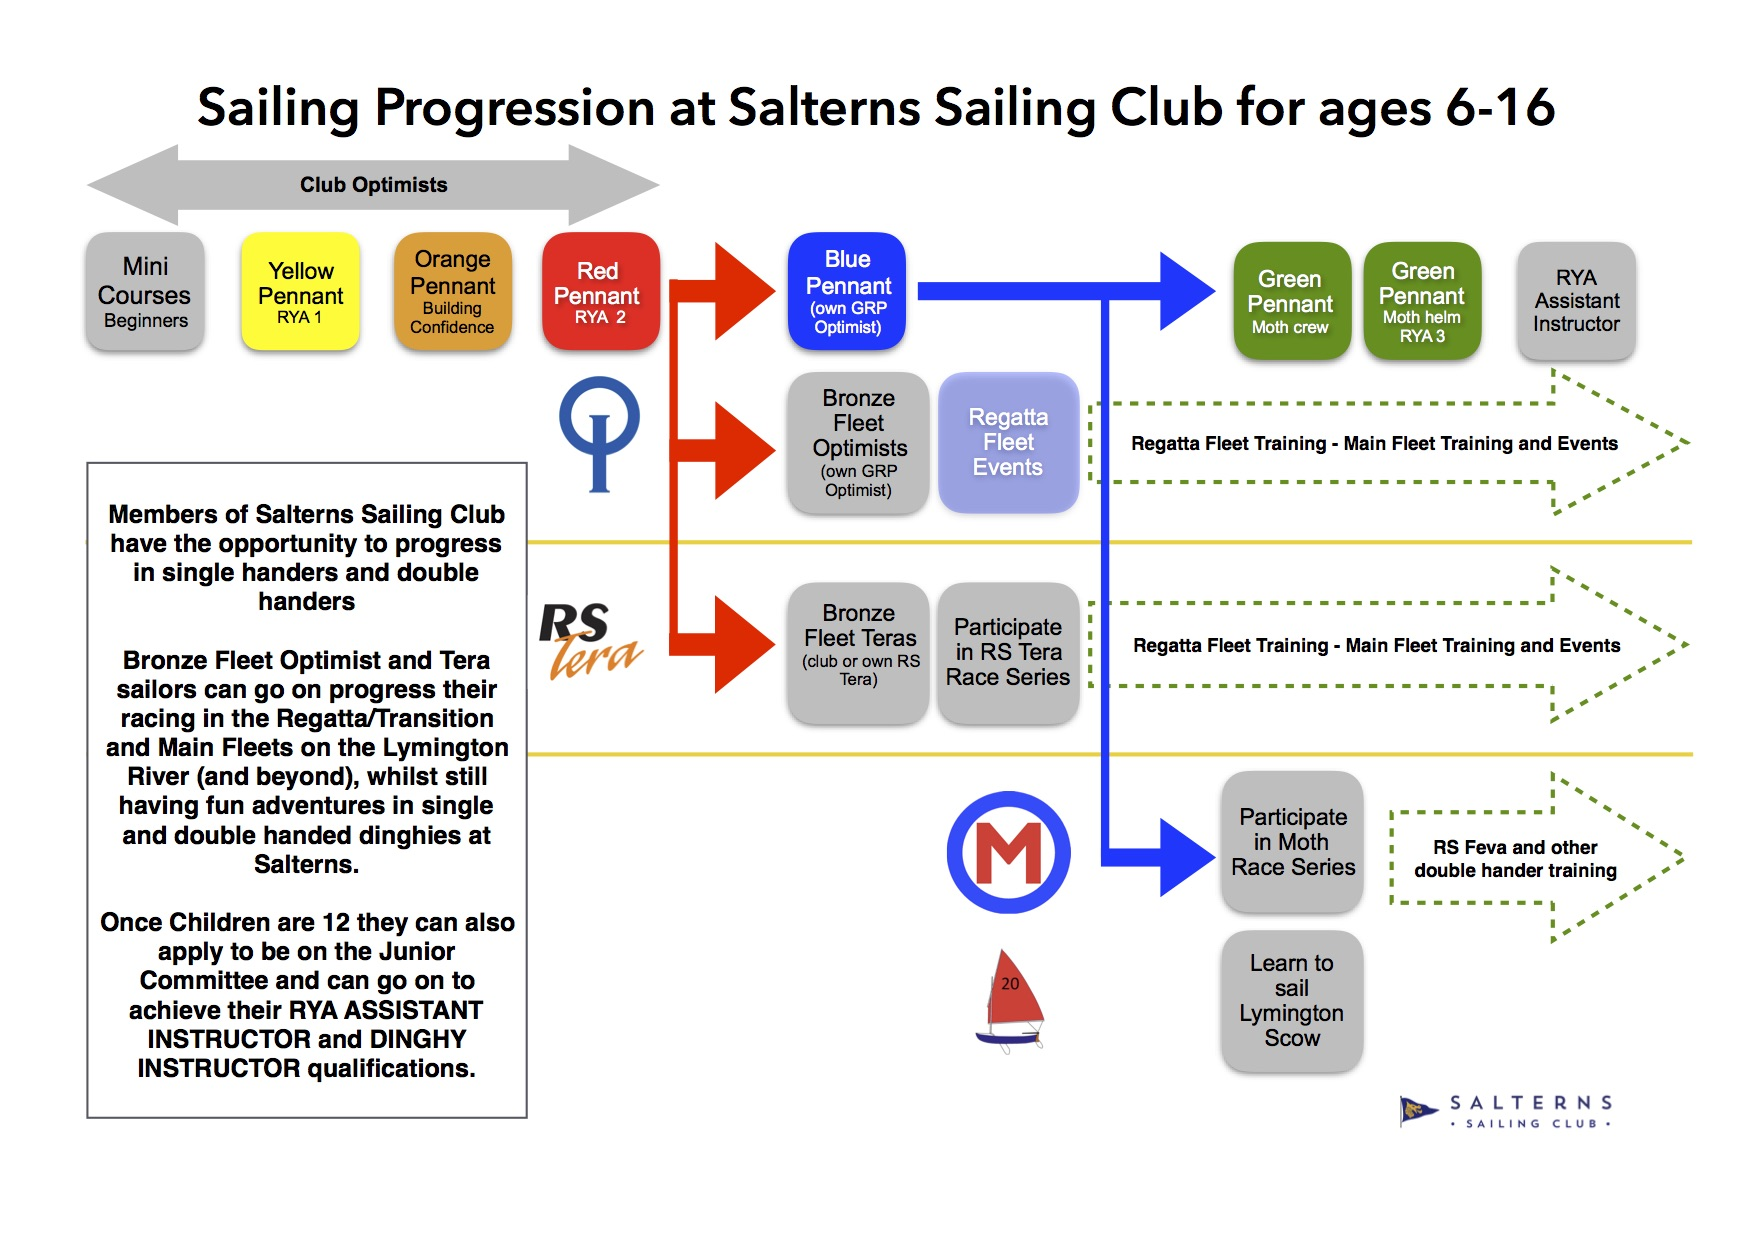 Sailing Progression at Salterns Sailing Club ages 6-16